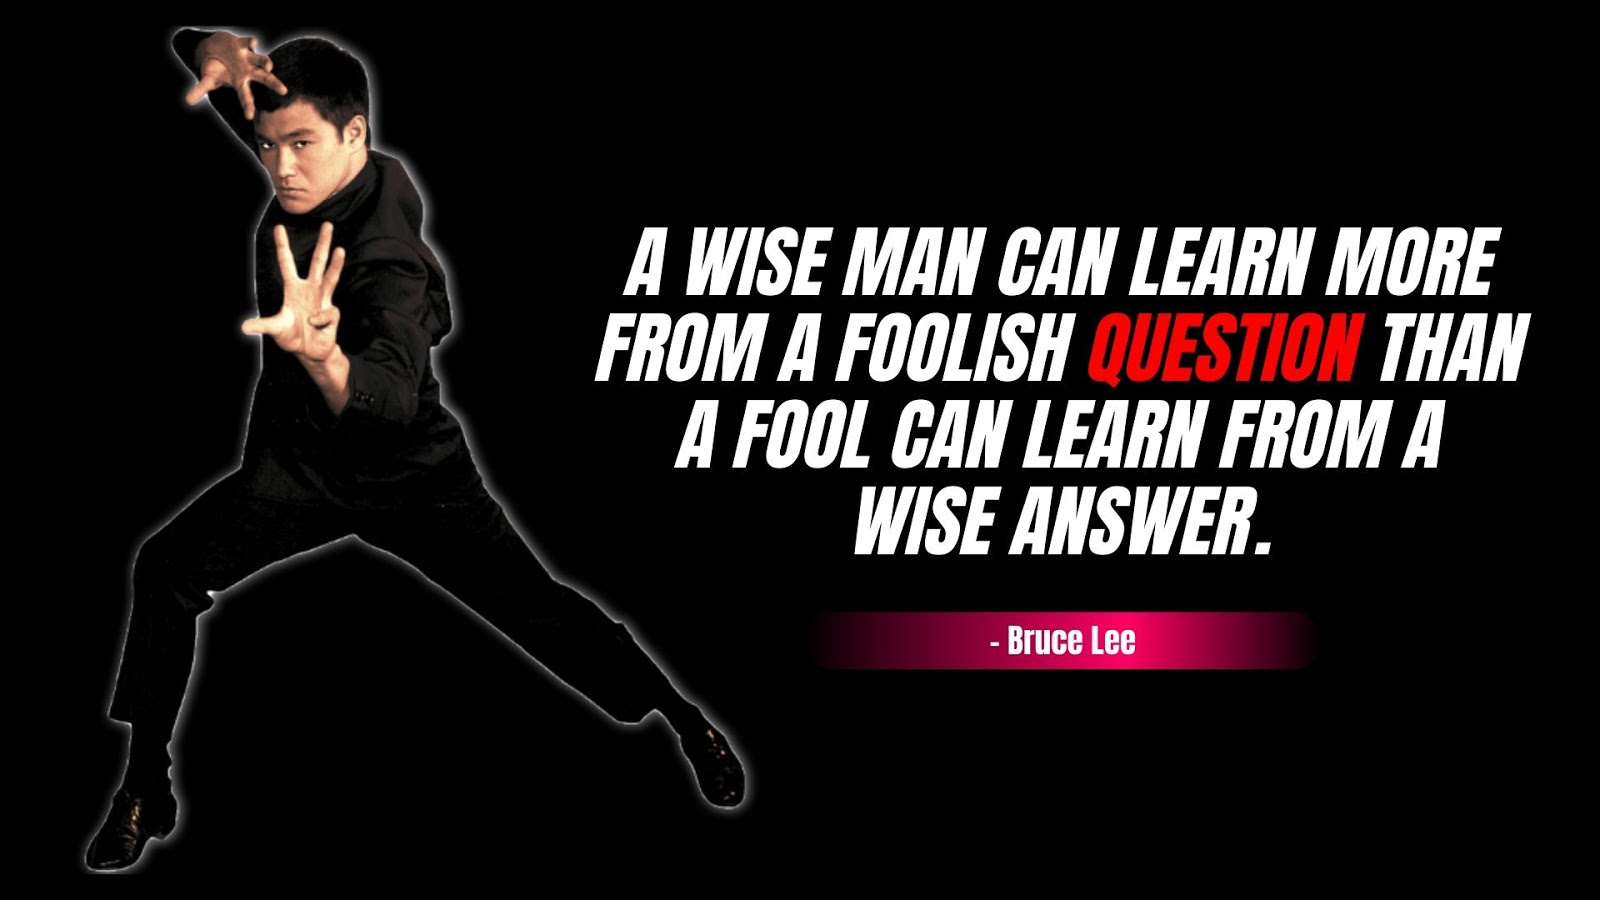 Bruce Lee Quotes for Life